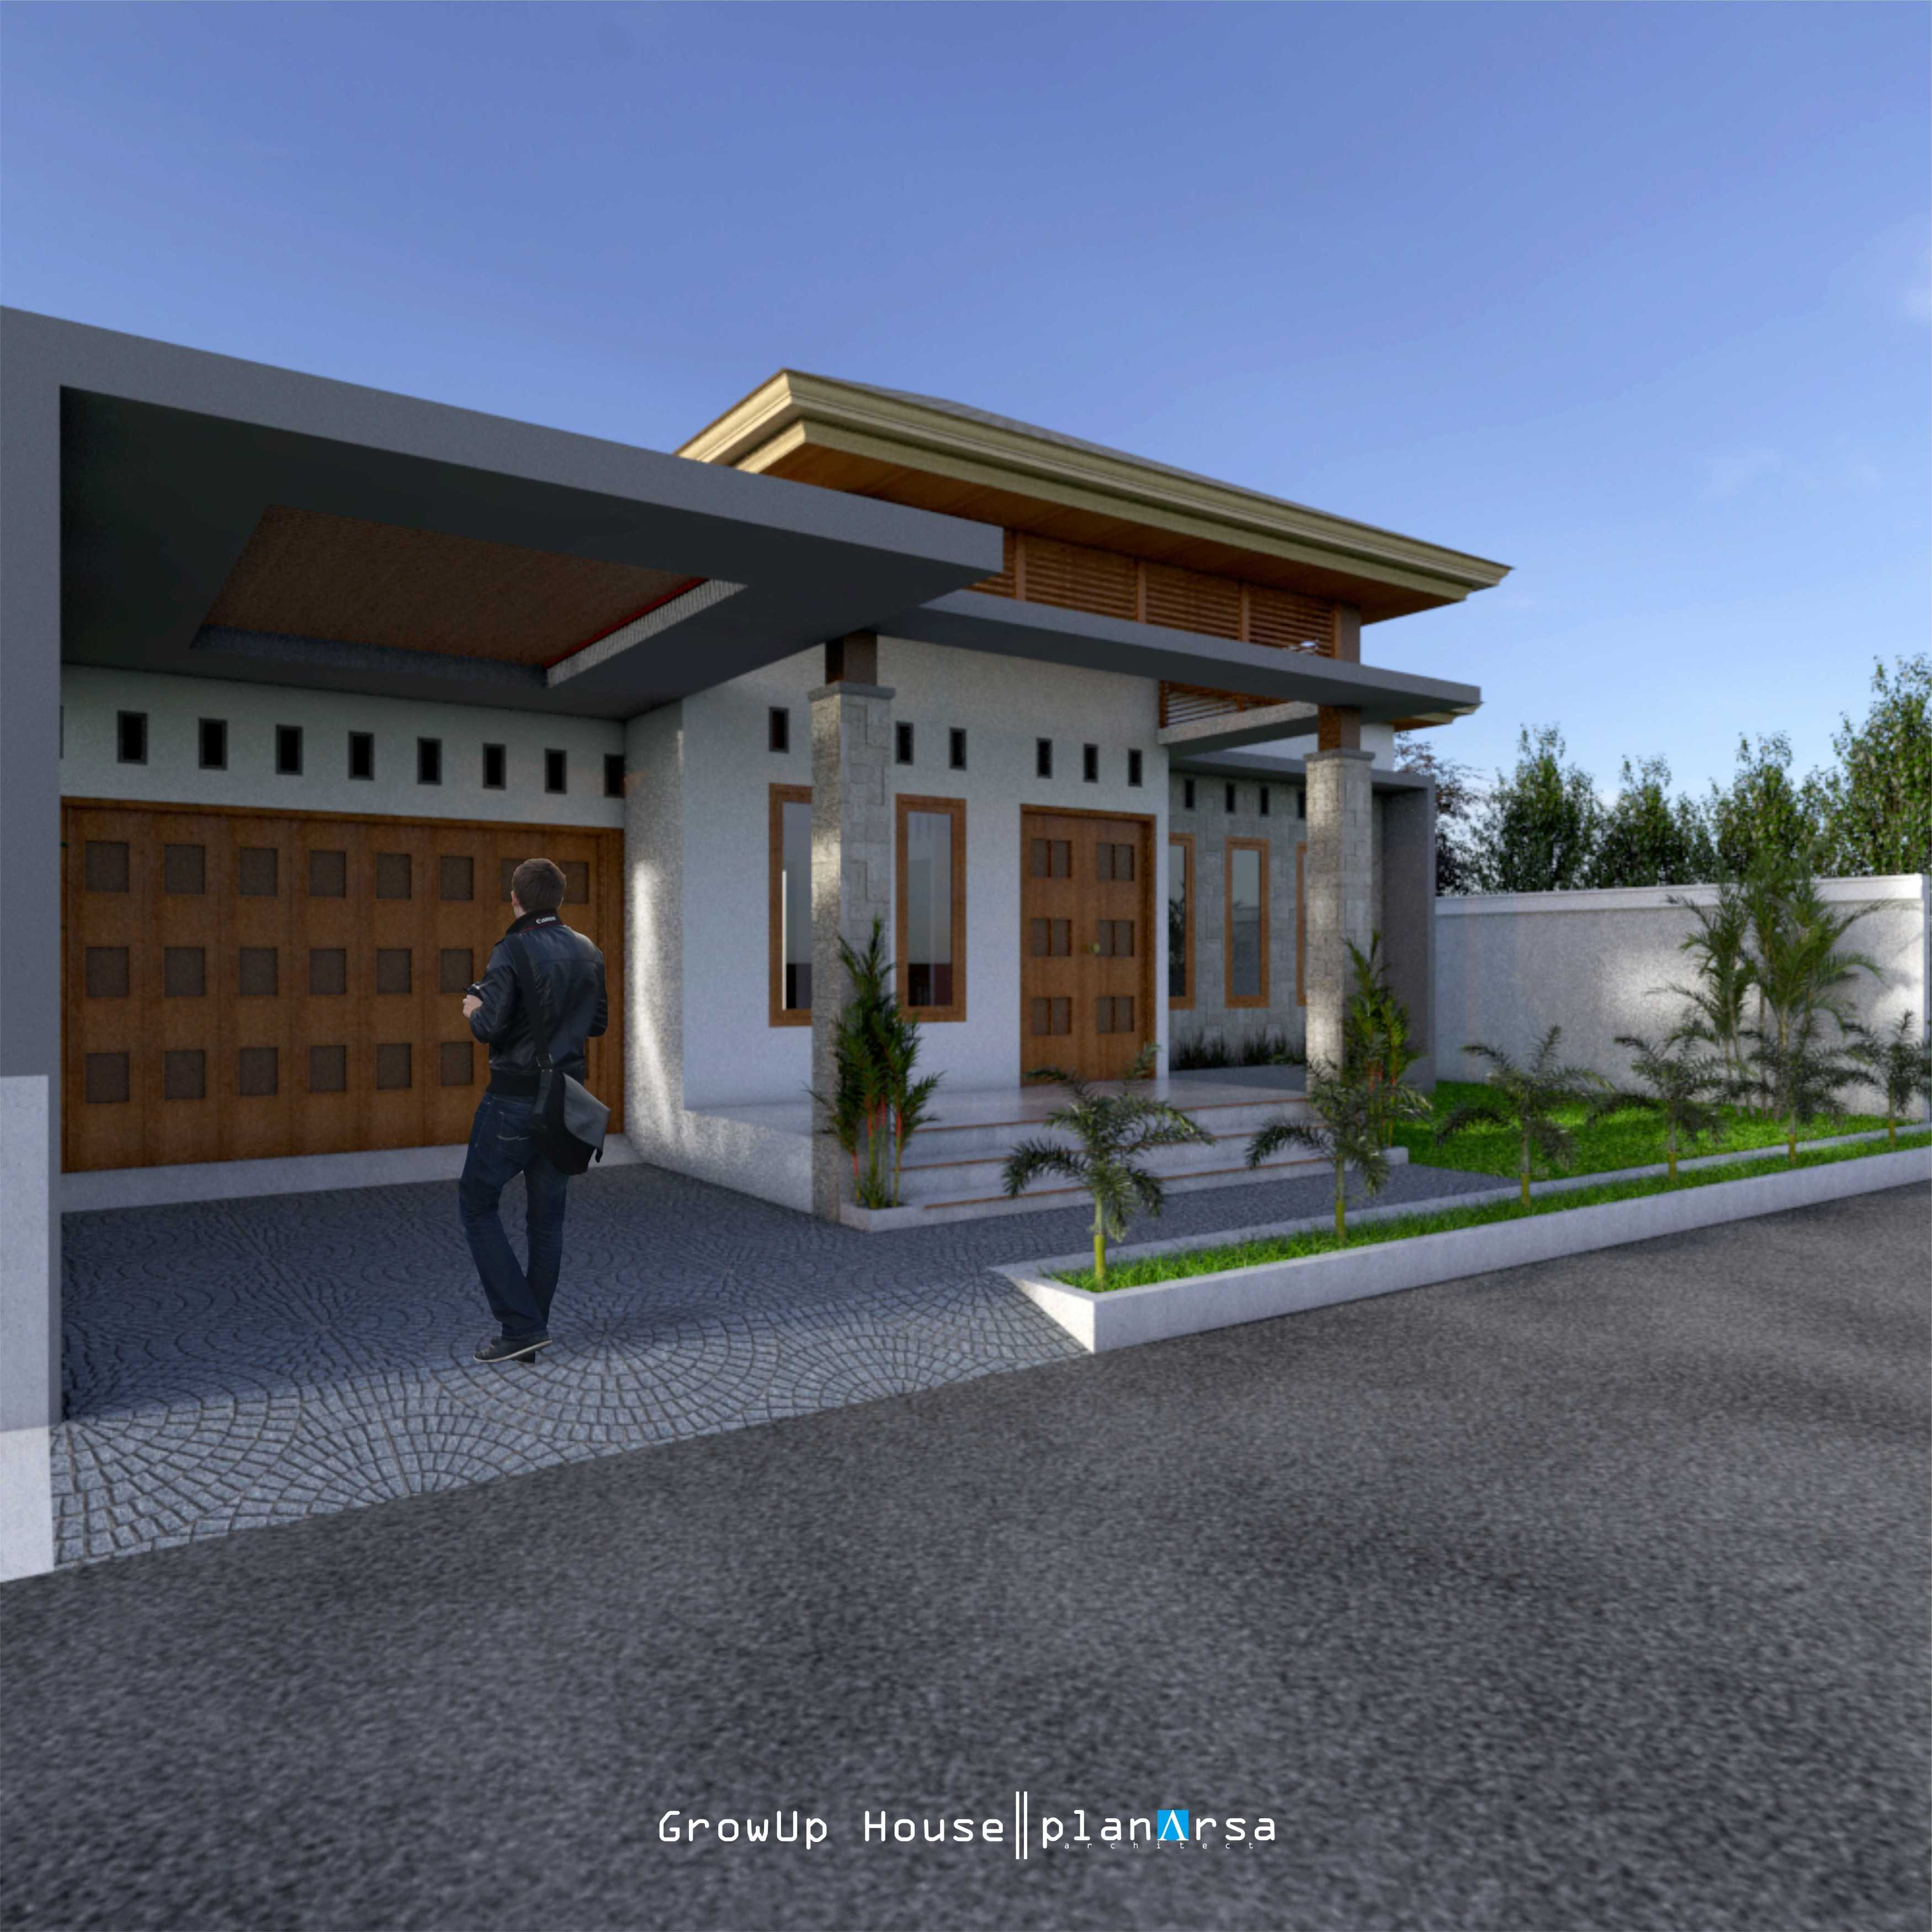 Planarsa Architect Growup House Aceh, Indonesia Aceh, Indonesia Planarsa-Architect-Growup-House   79253